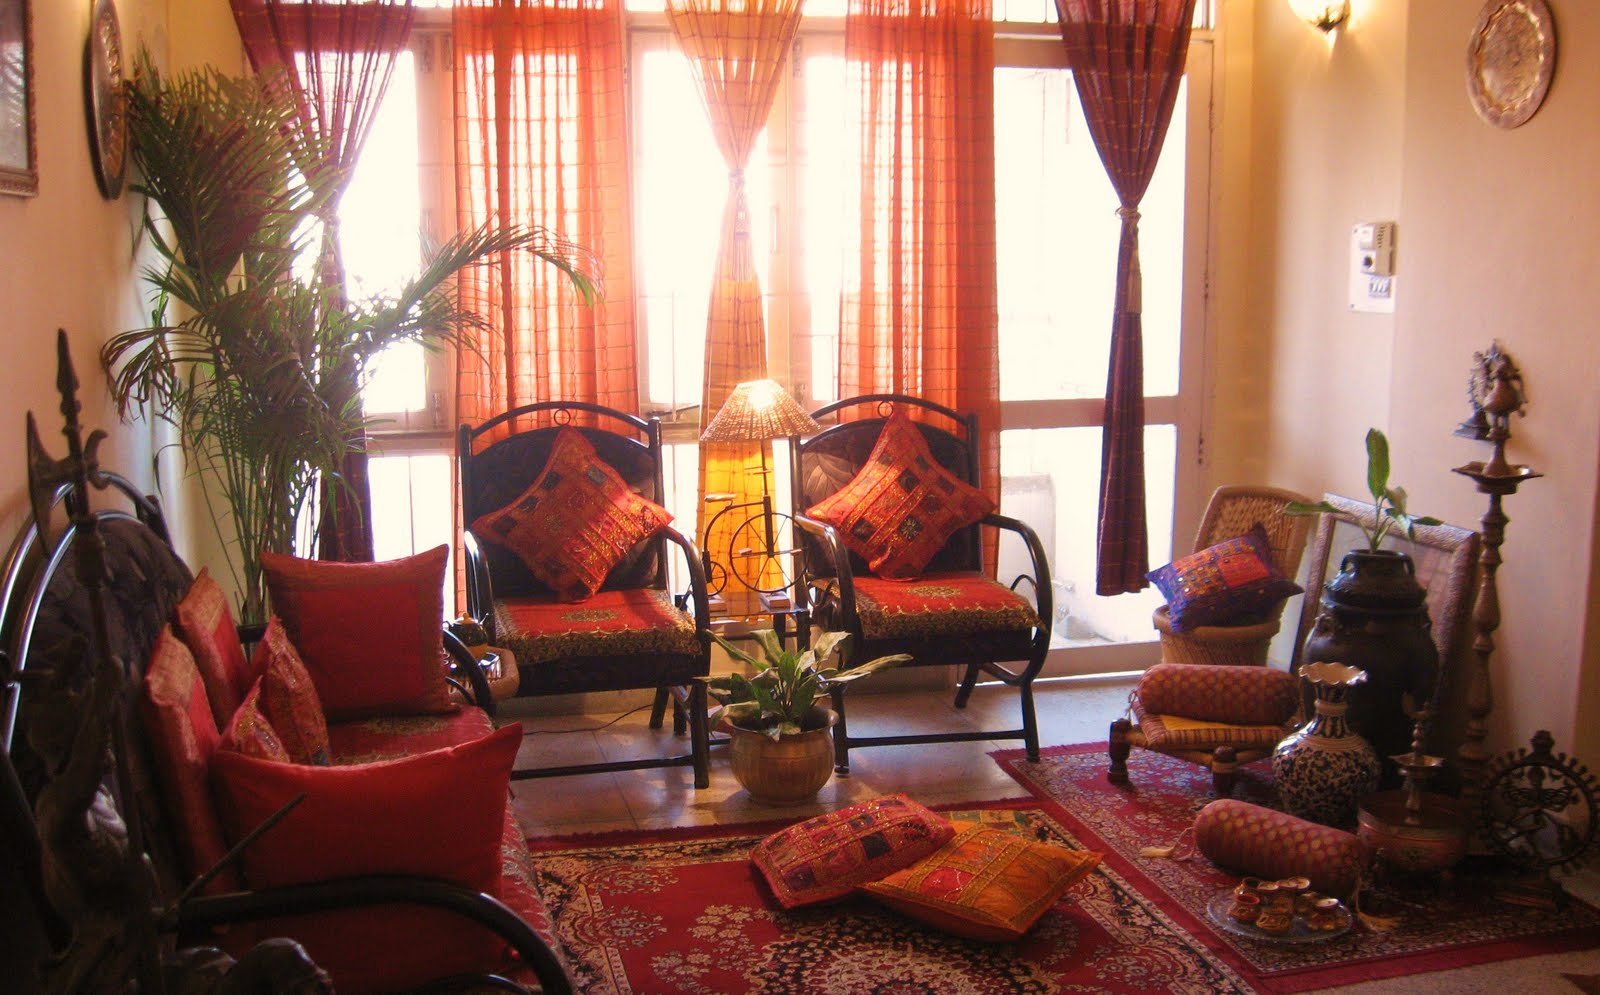 Home Decorations India Of Interior Design Indian Interiors Living Rooms Decor